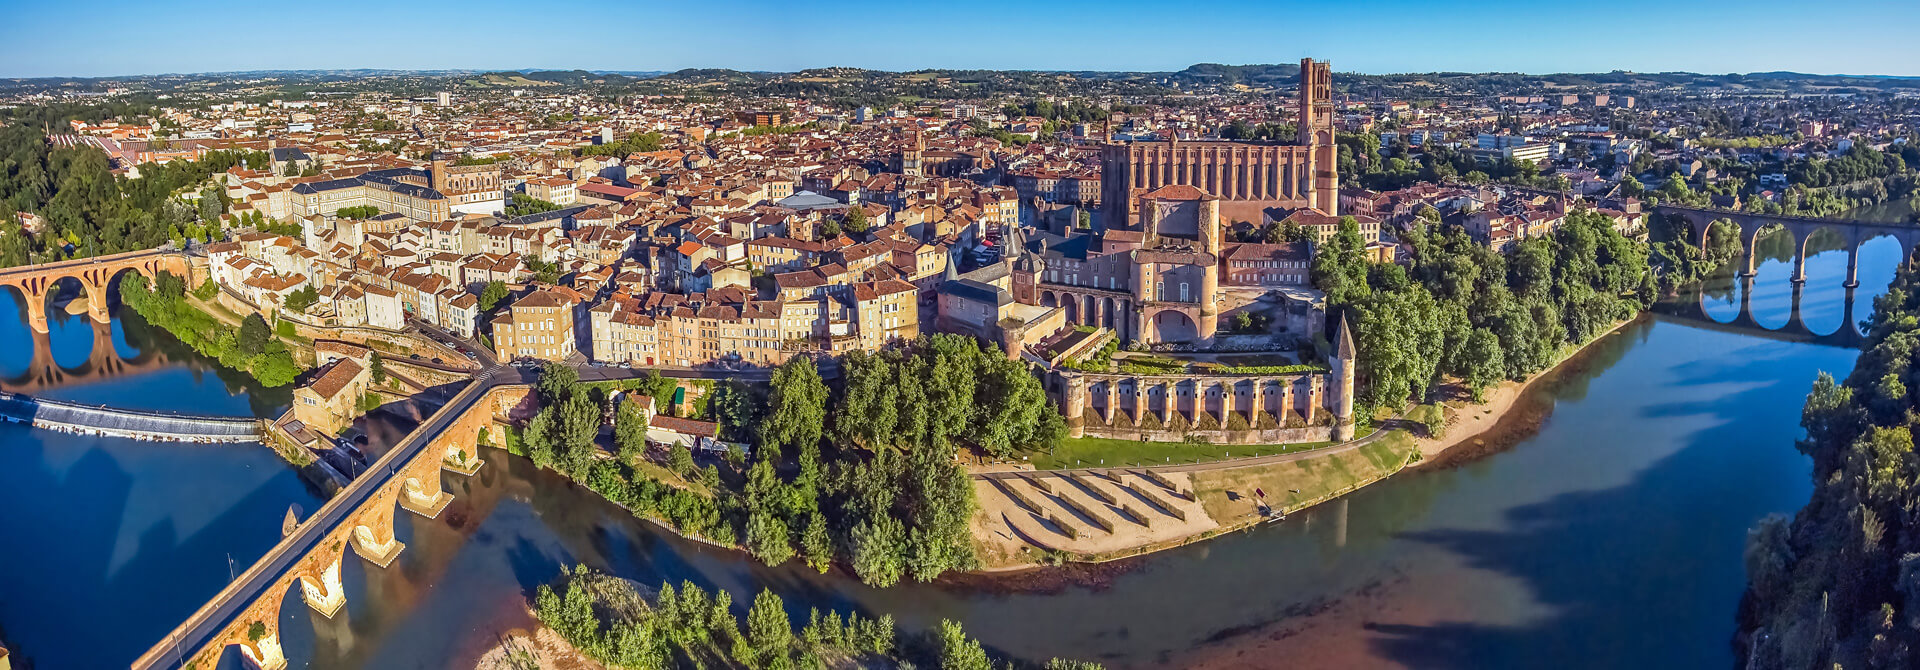 albi-panoramique.jpg